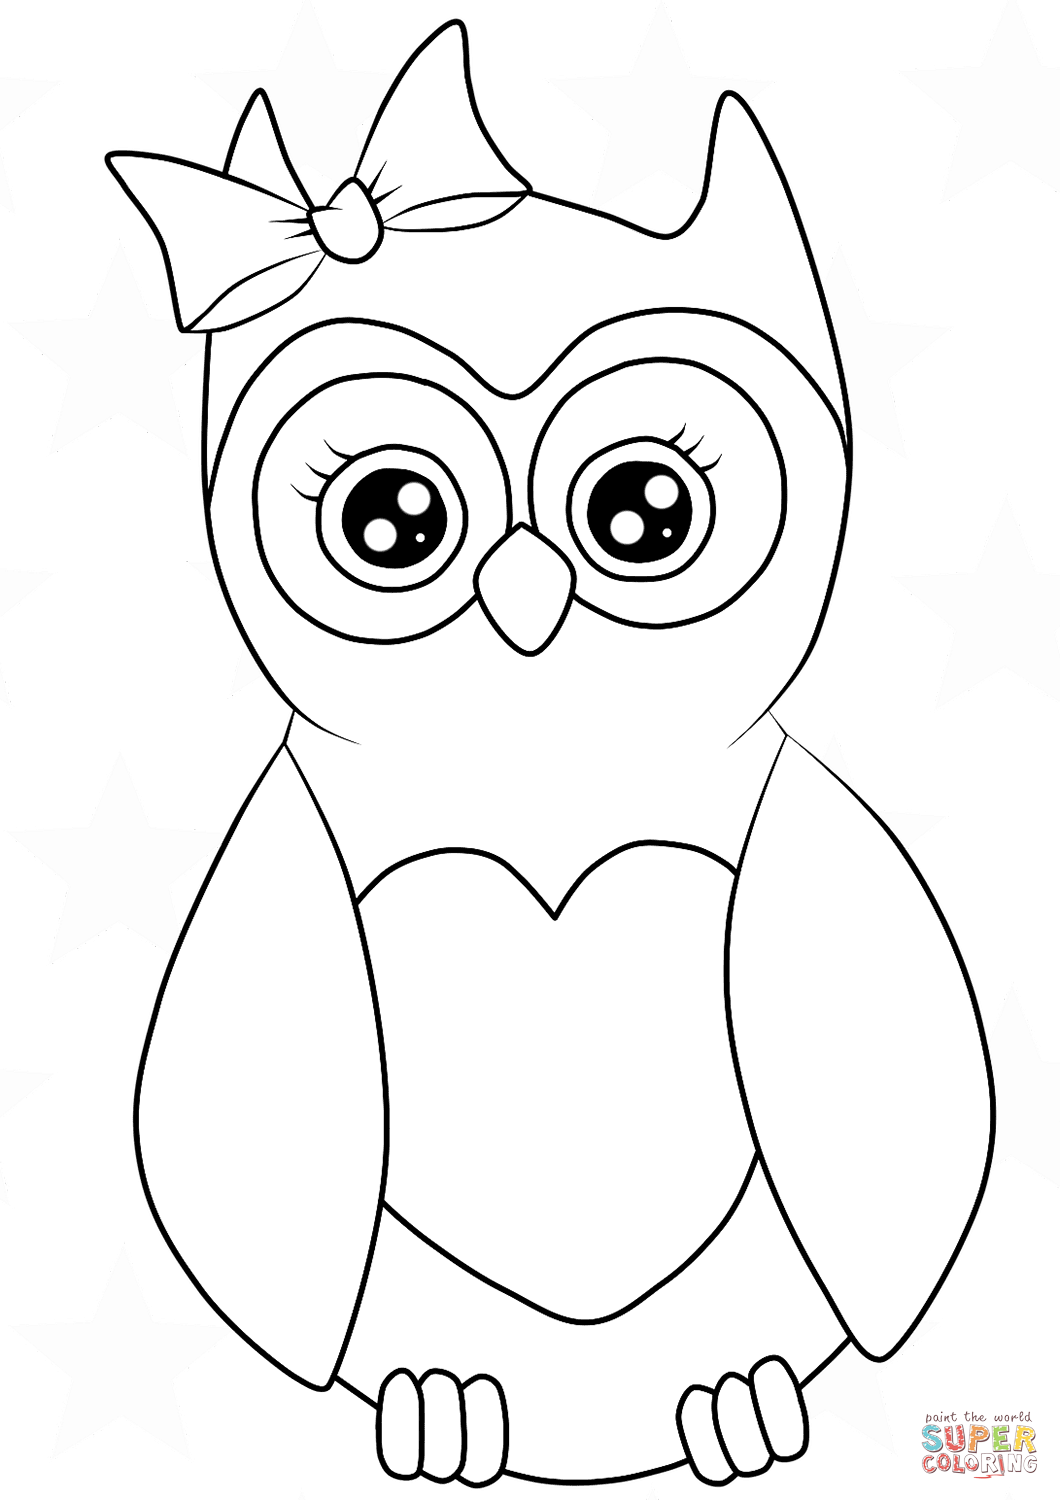 coloring pictures of owls baby owls coloring sheet to print coloring of owls pictures